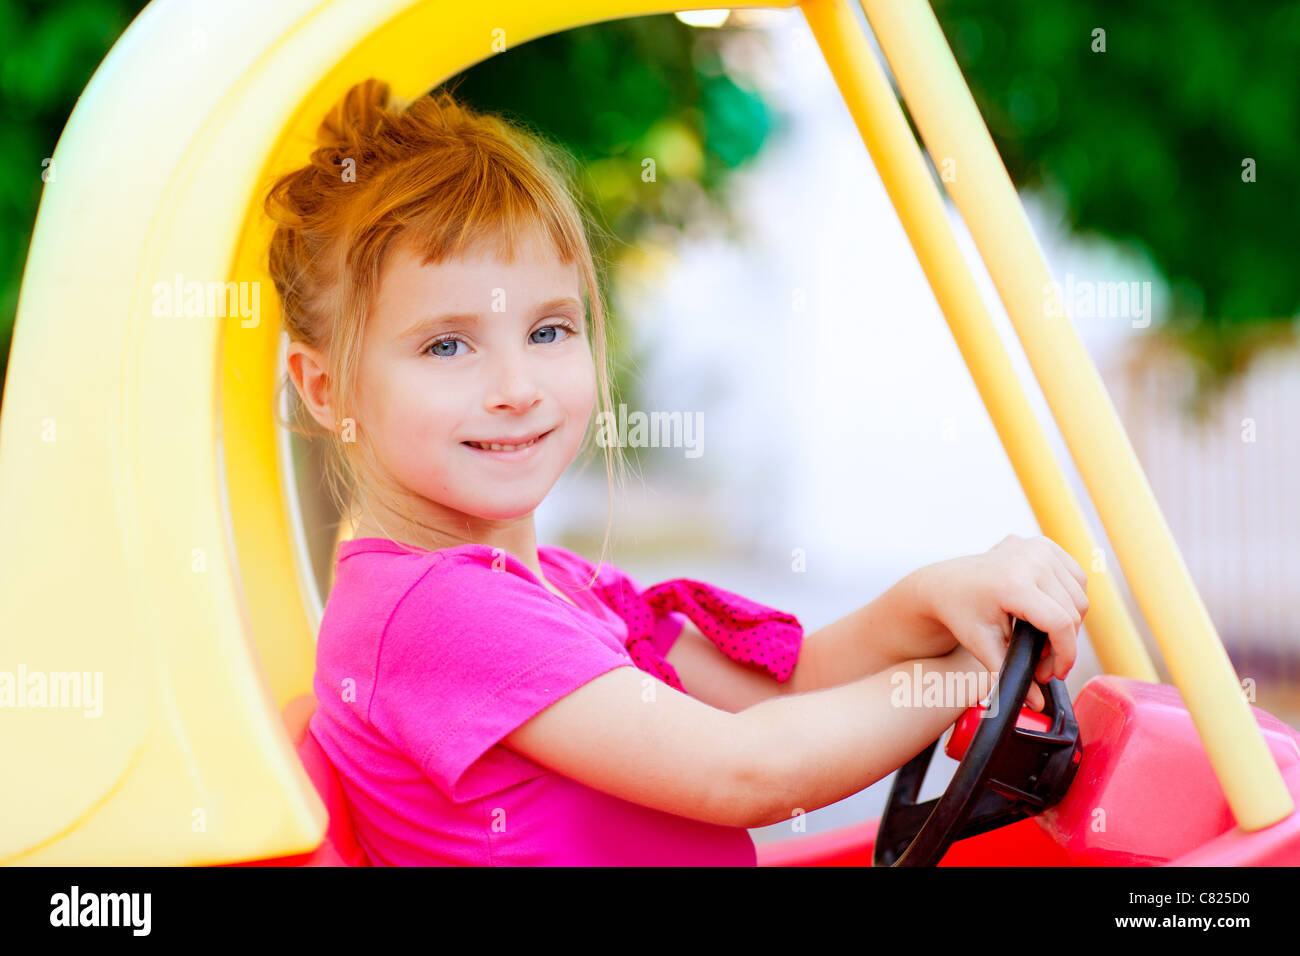 blond children girl driving toy car yellow Stock Photo